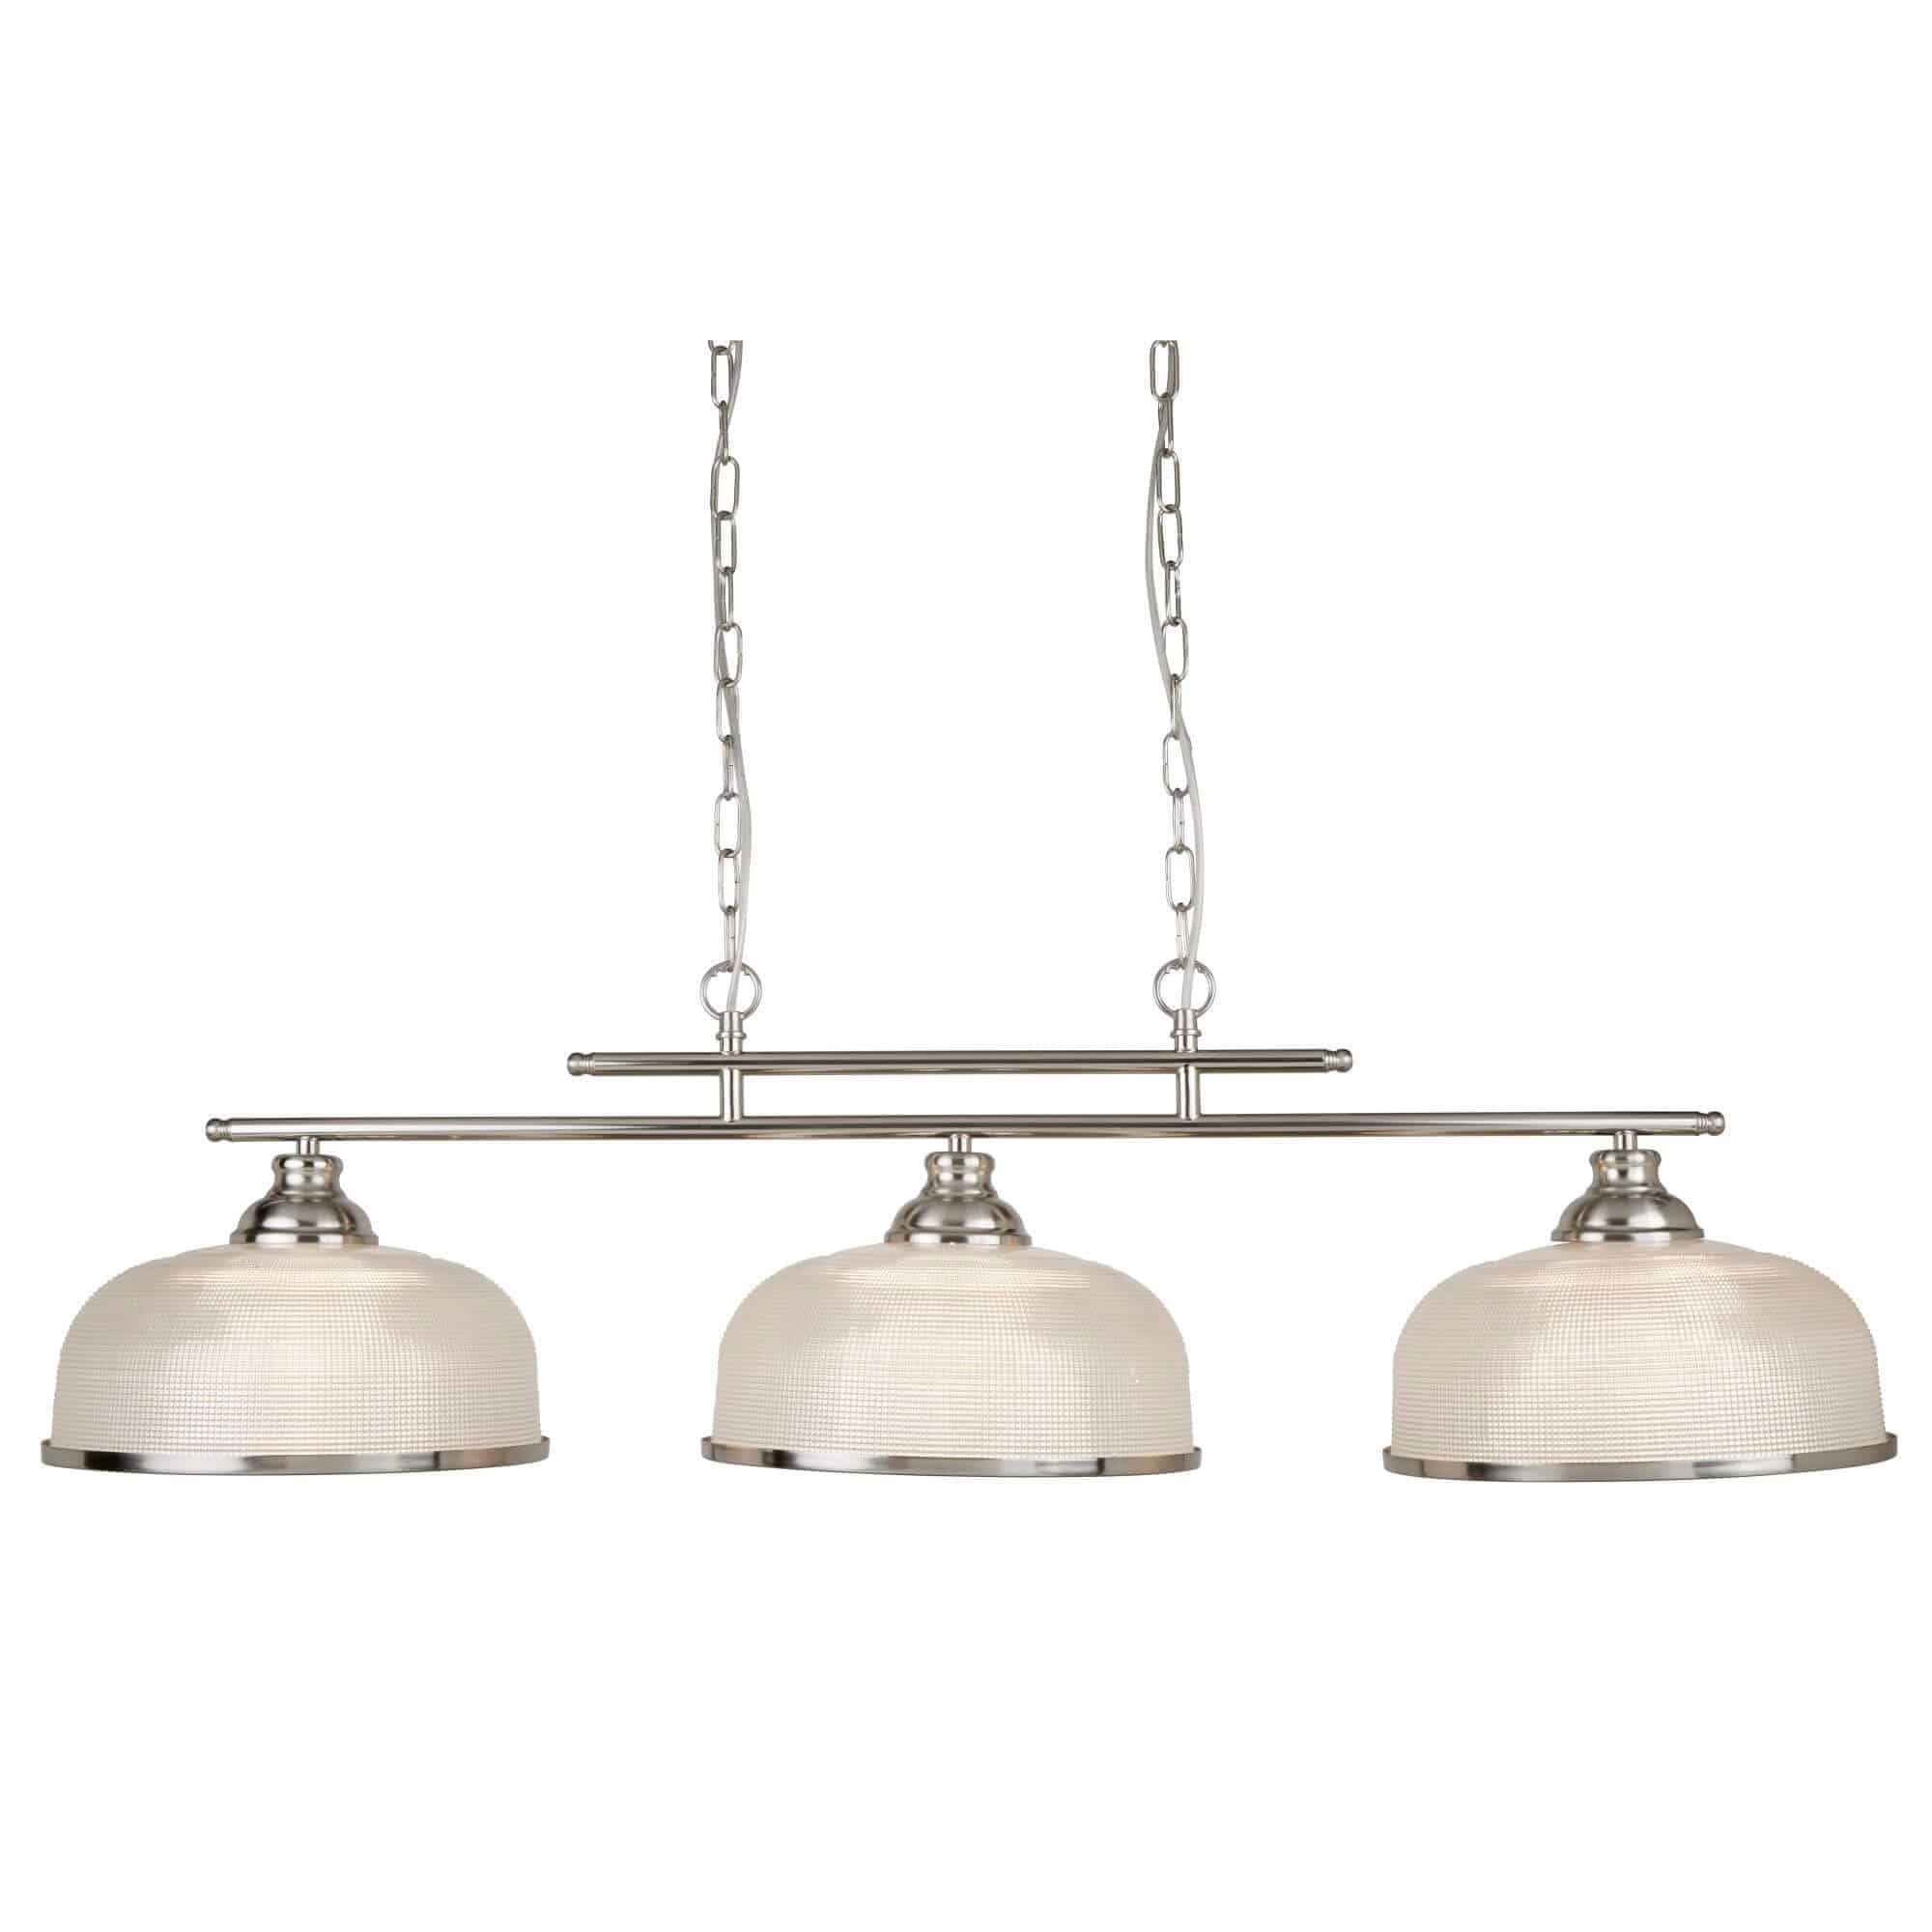 3593-3SS – Searchlight Bistro ii Satin Silver3 Light Ceiling Bar